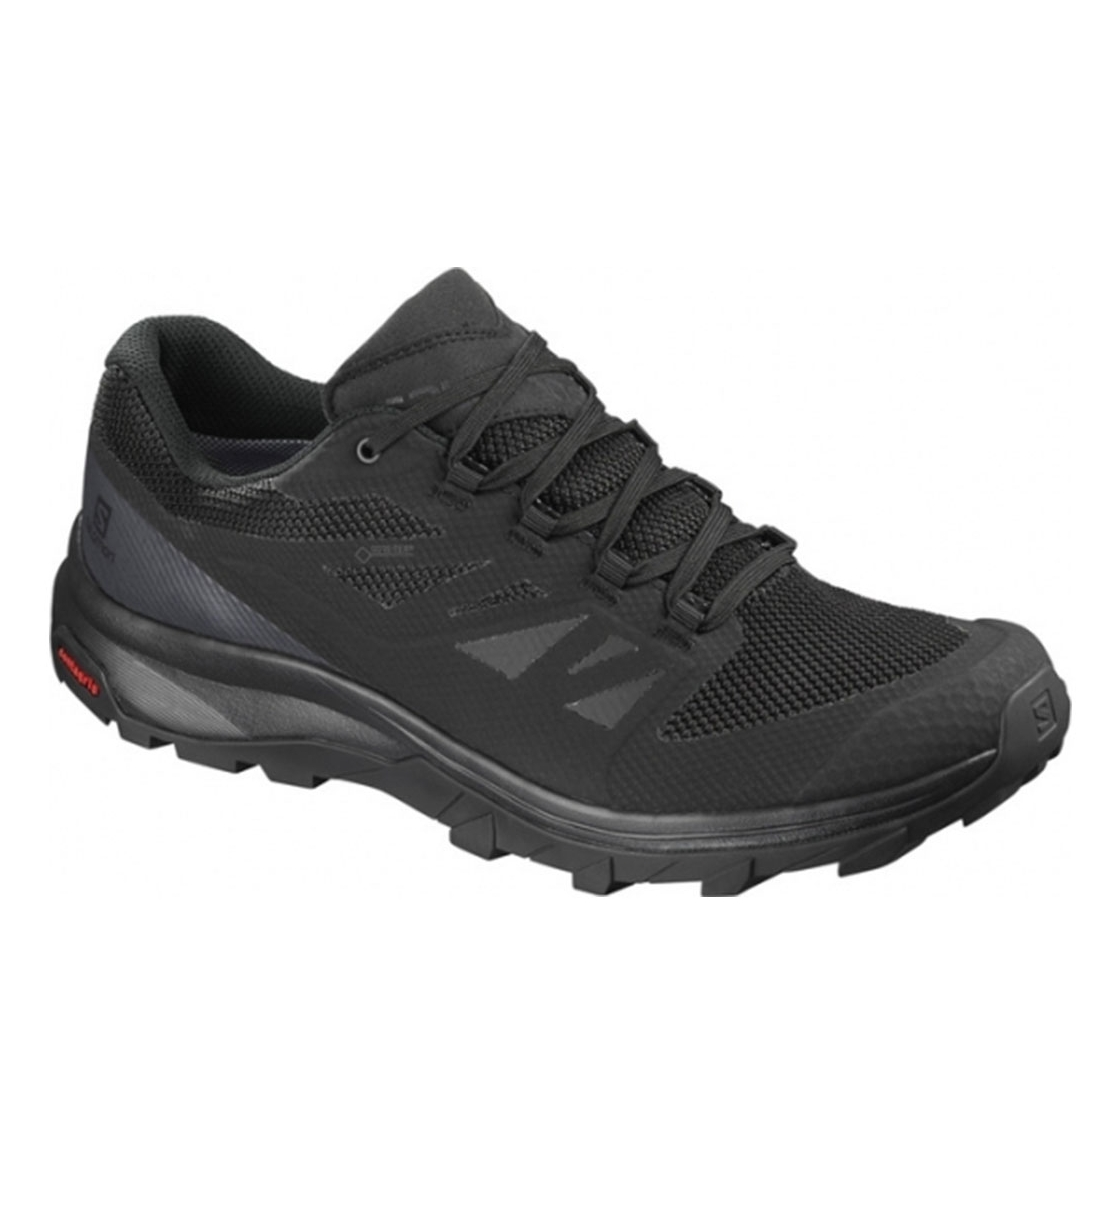 Salomon Fw19 Hiking & Multifunction Shoes Outline Gtx